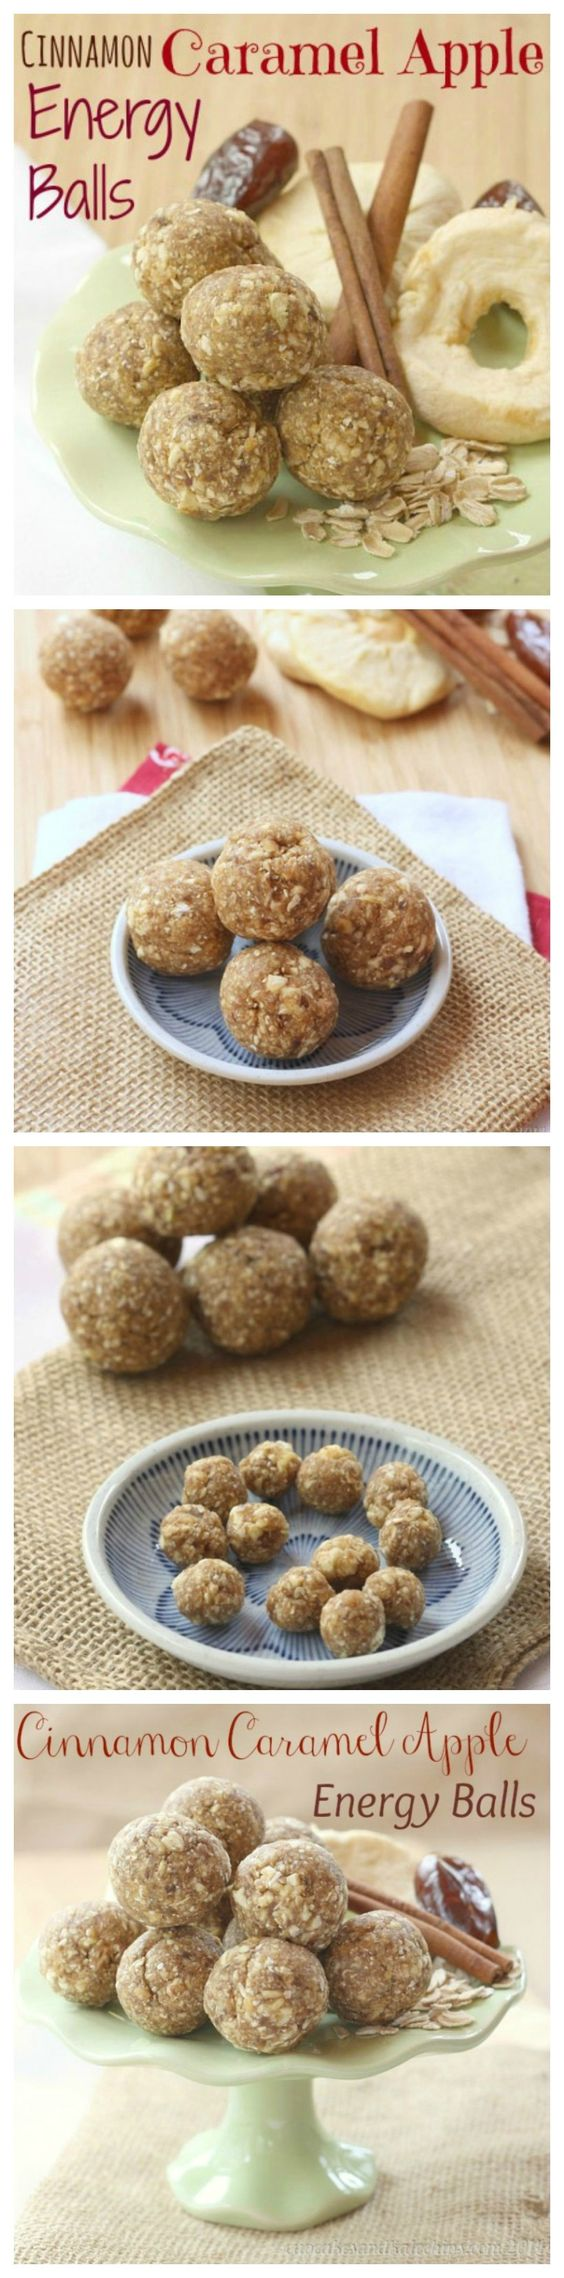 Healthy Snacks for Kids: Cinnamon Caramel Apple Energy Balls: